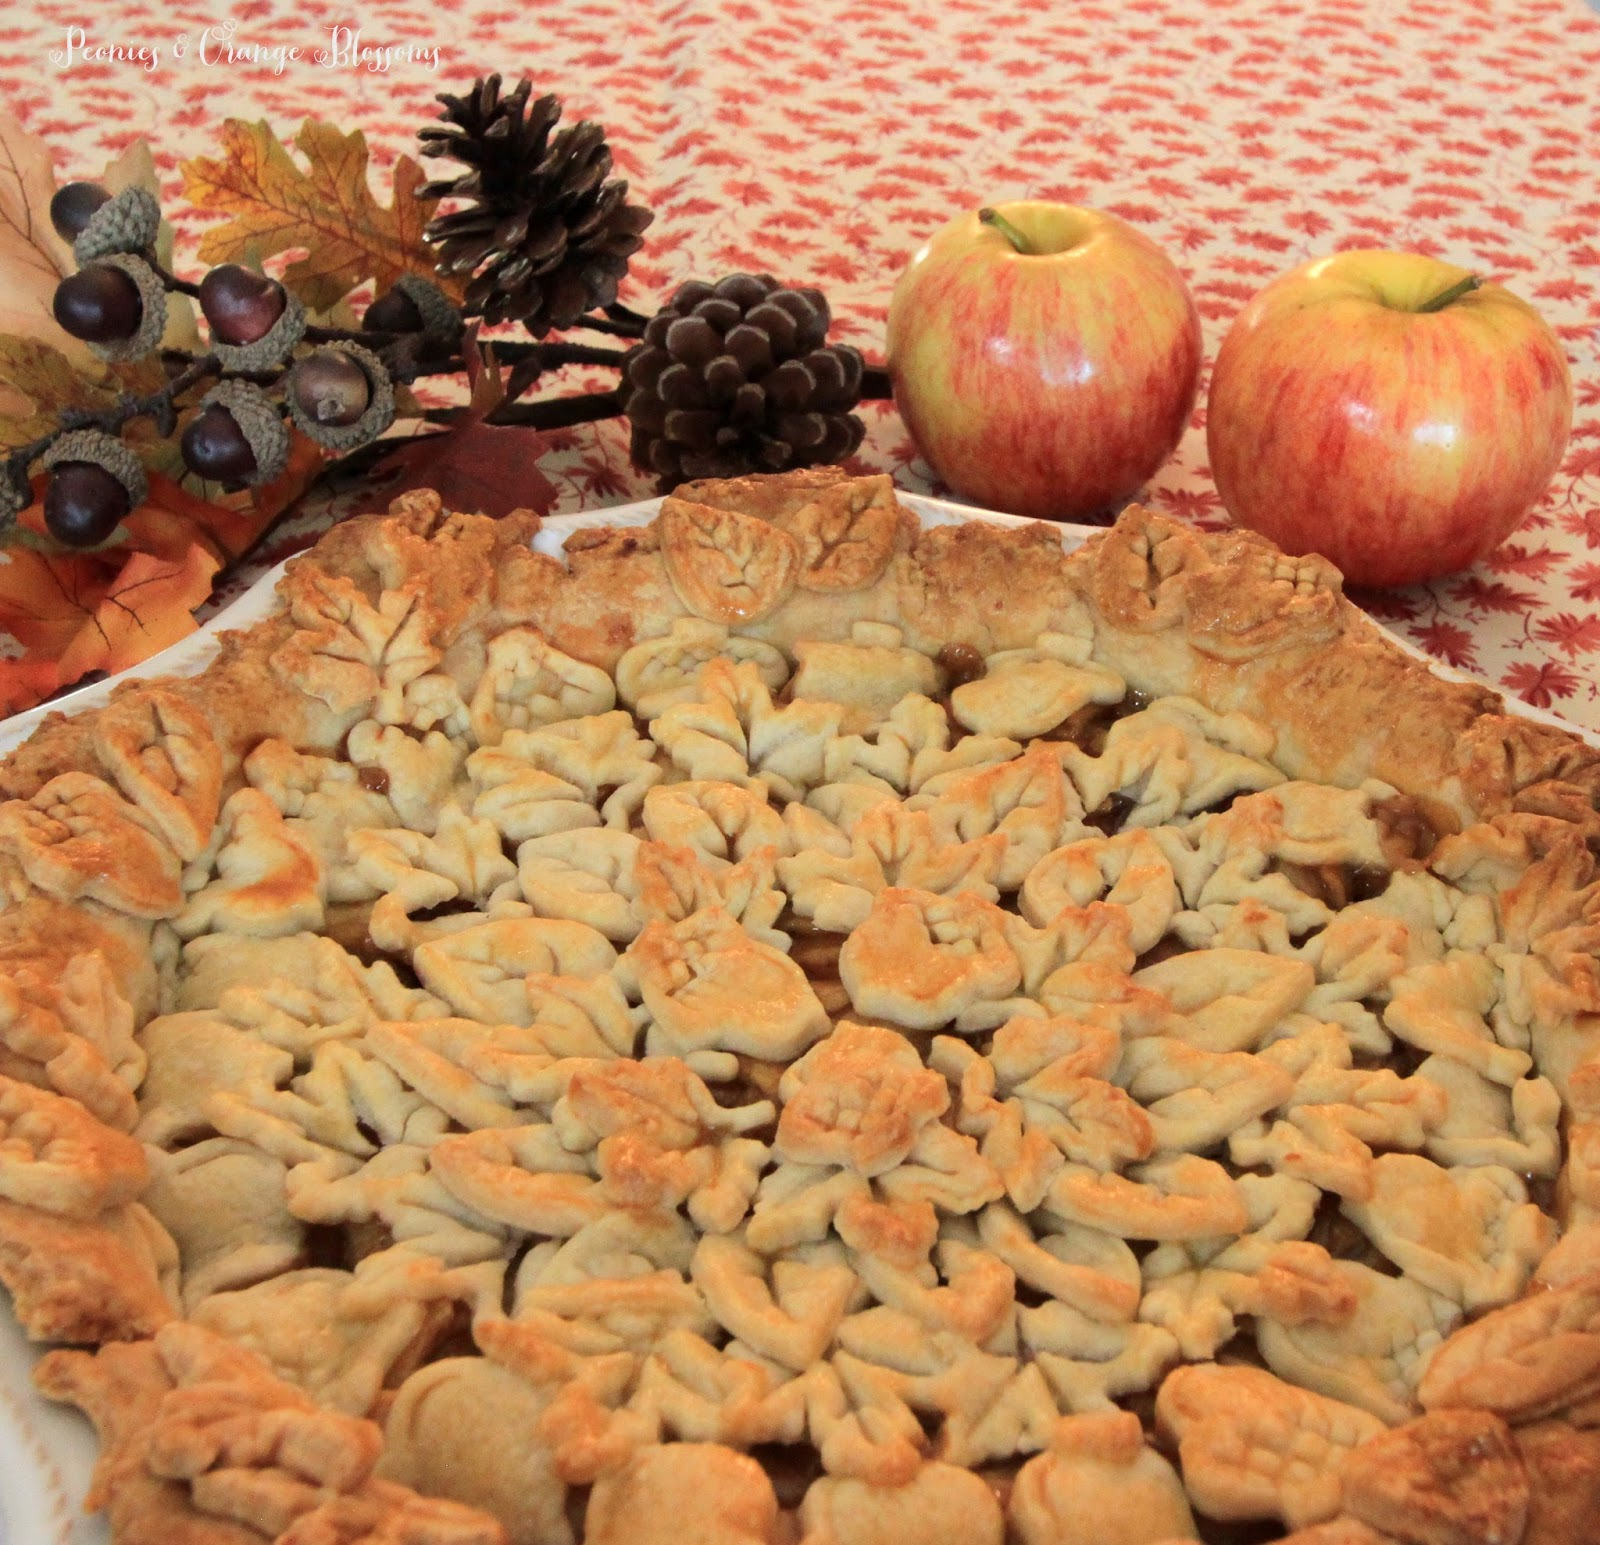 The best apple pie recipe - seriously, I have been making this for years and get rave review from everyone!